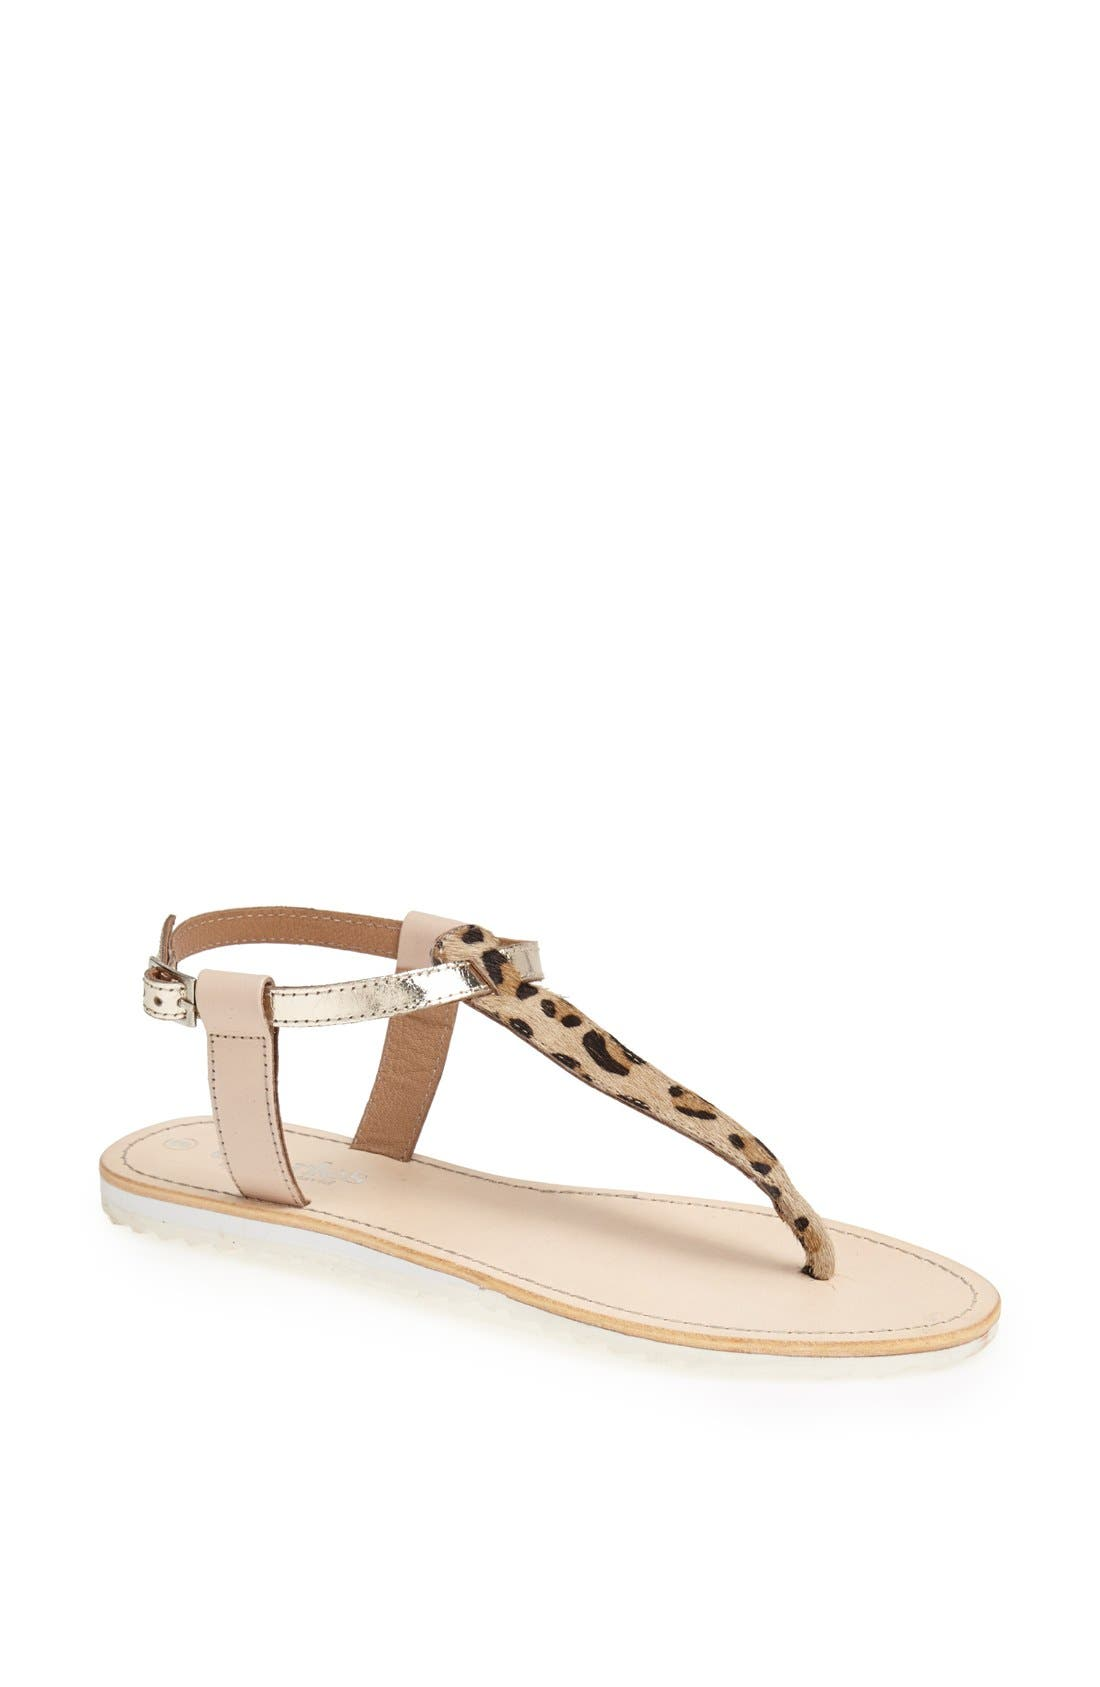 Main Image - Charles by Charles David 'Valley' Thong Sandal